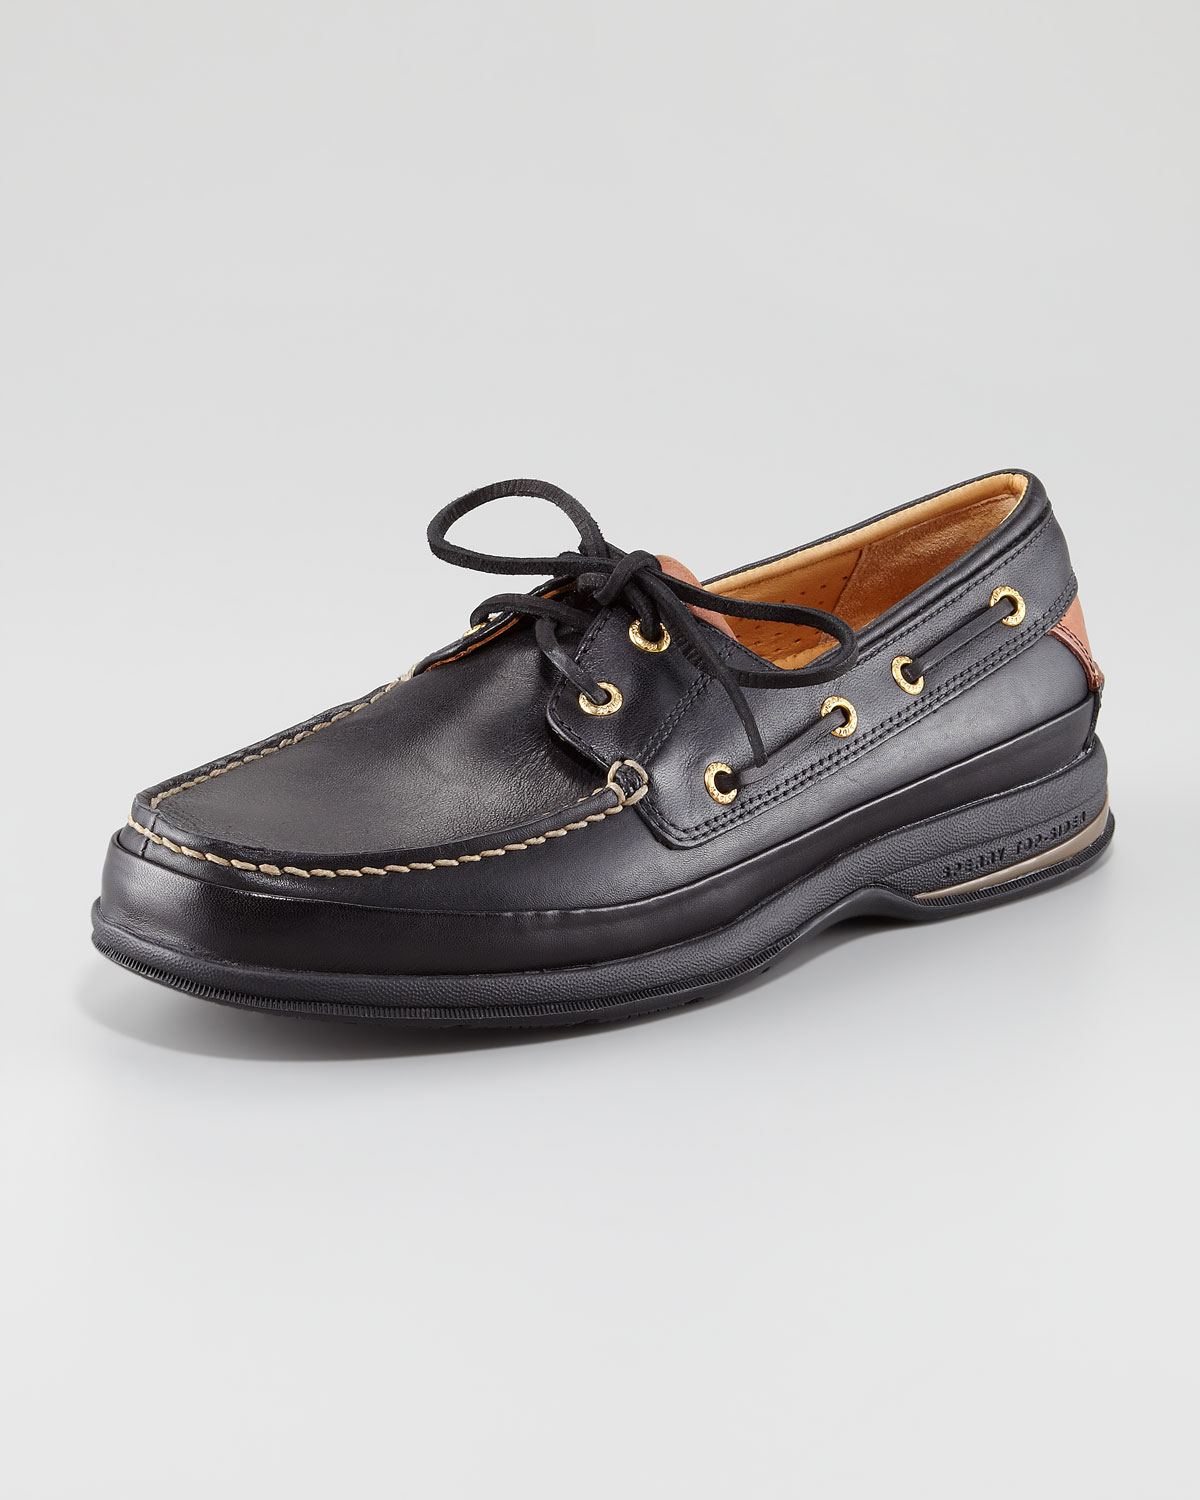 Eye Black Boat Shoes